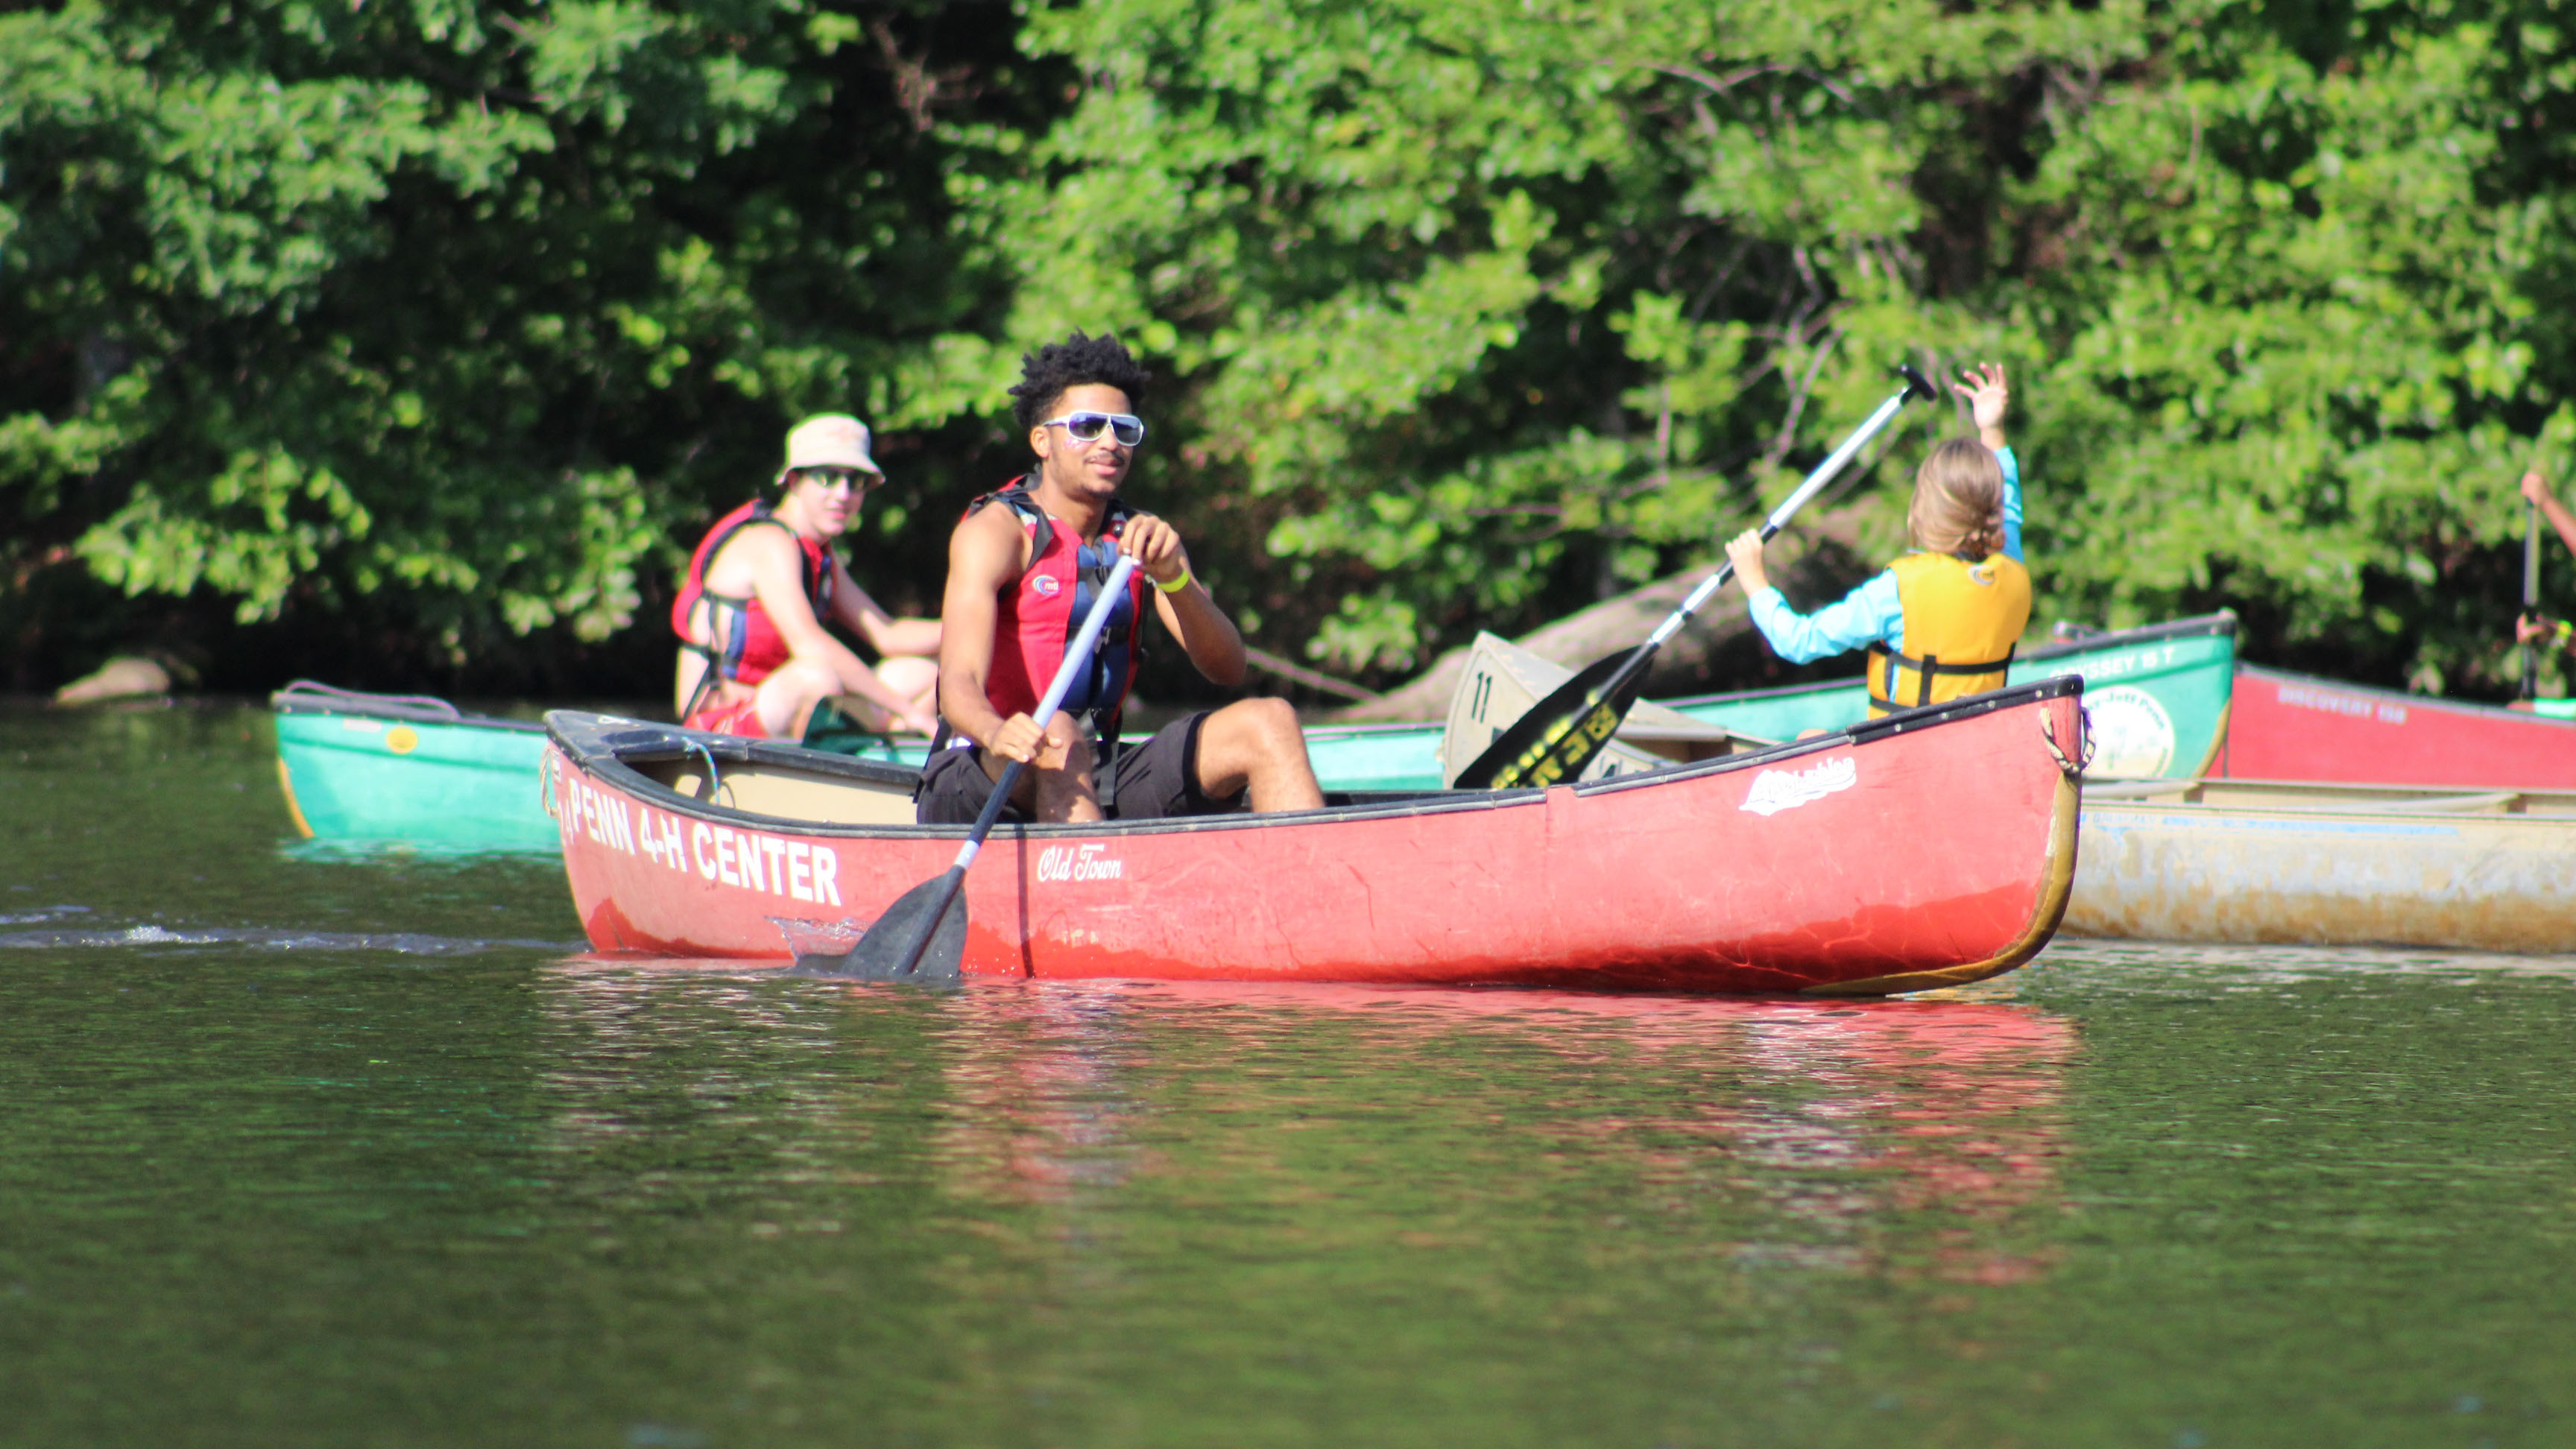 Taqqee paddles in canoe with 4-H campers.